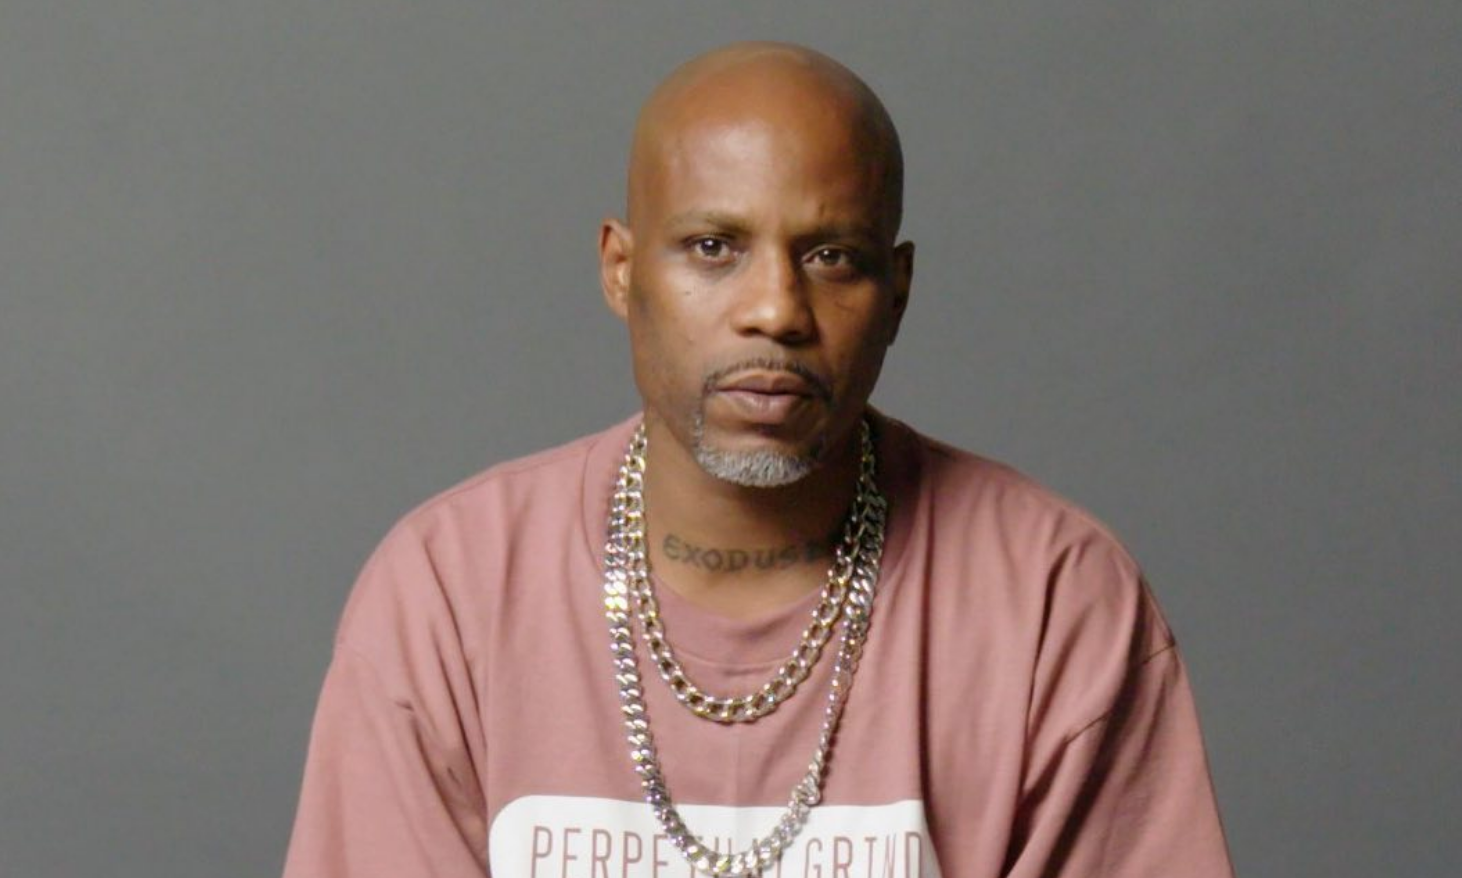 DMX's Public Memorial To Be Held The Next Weekend